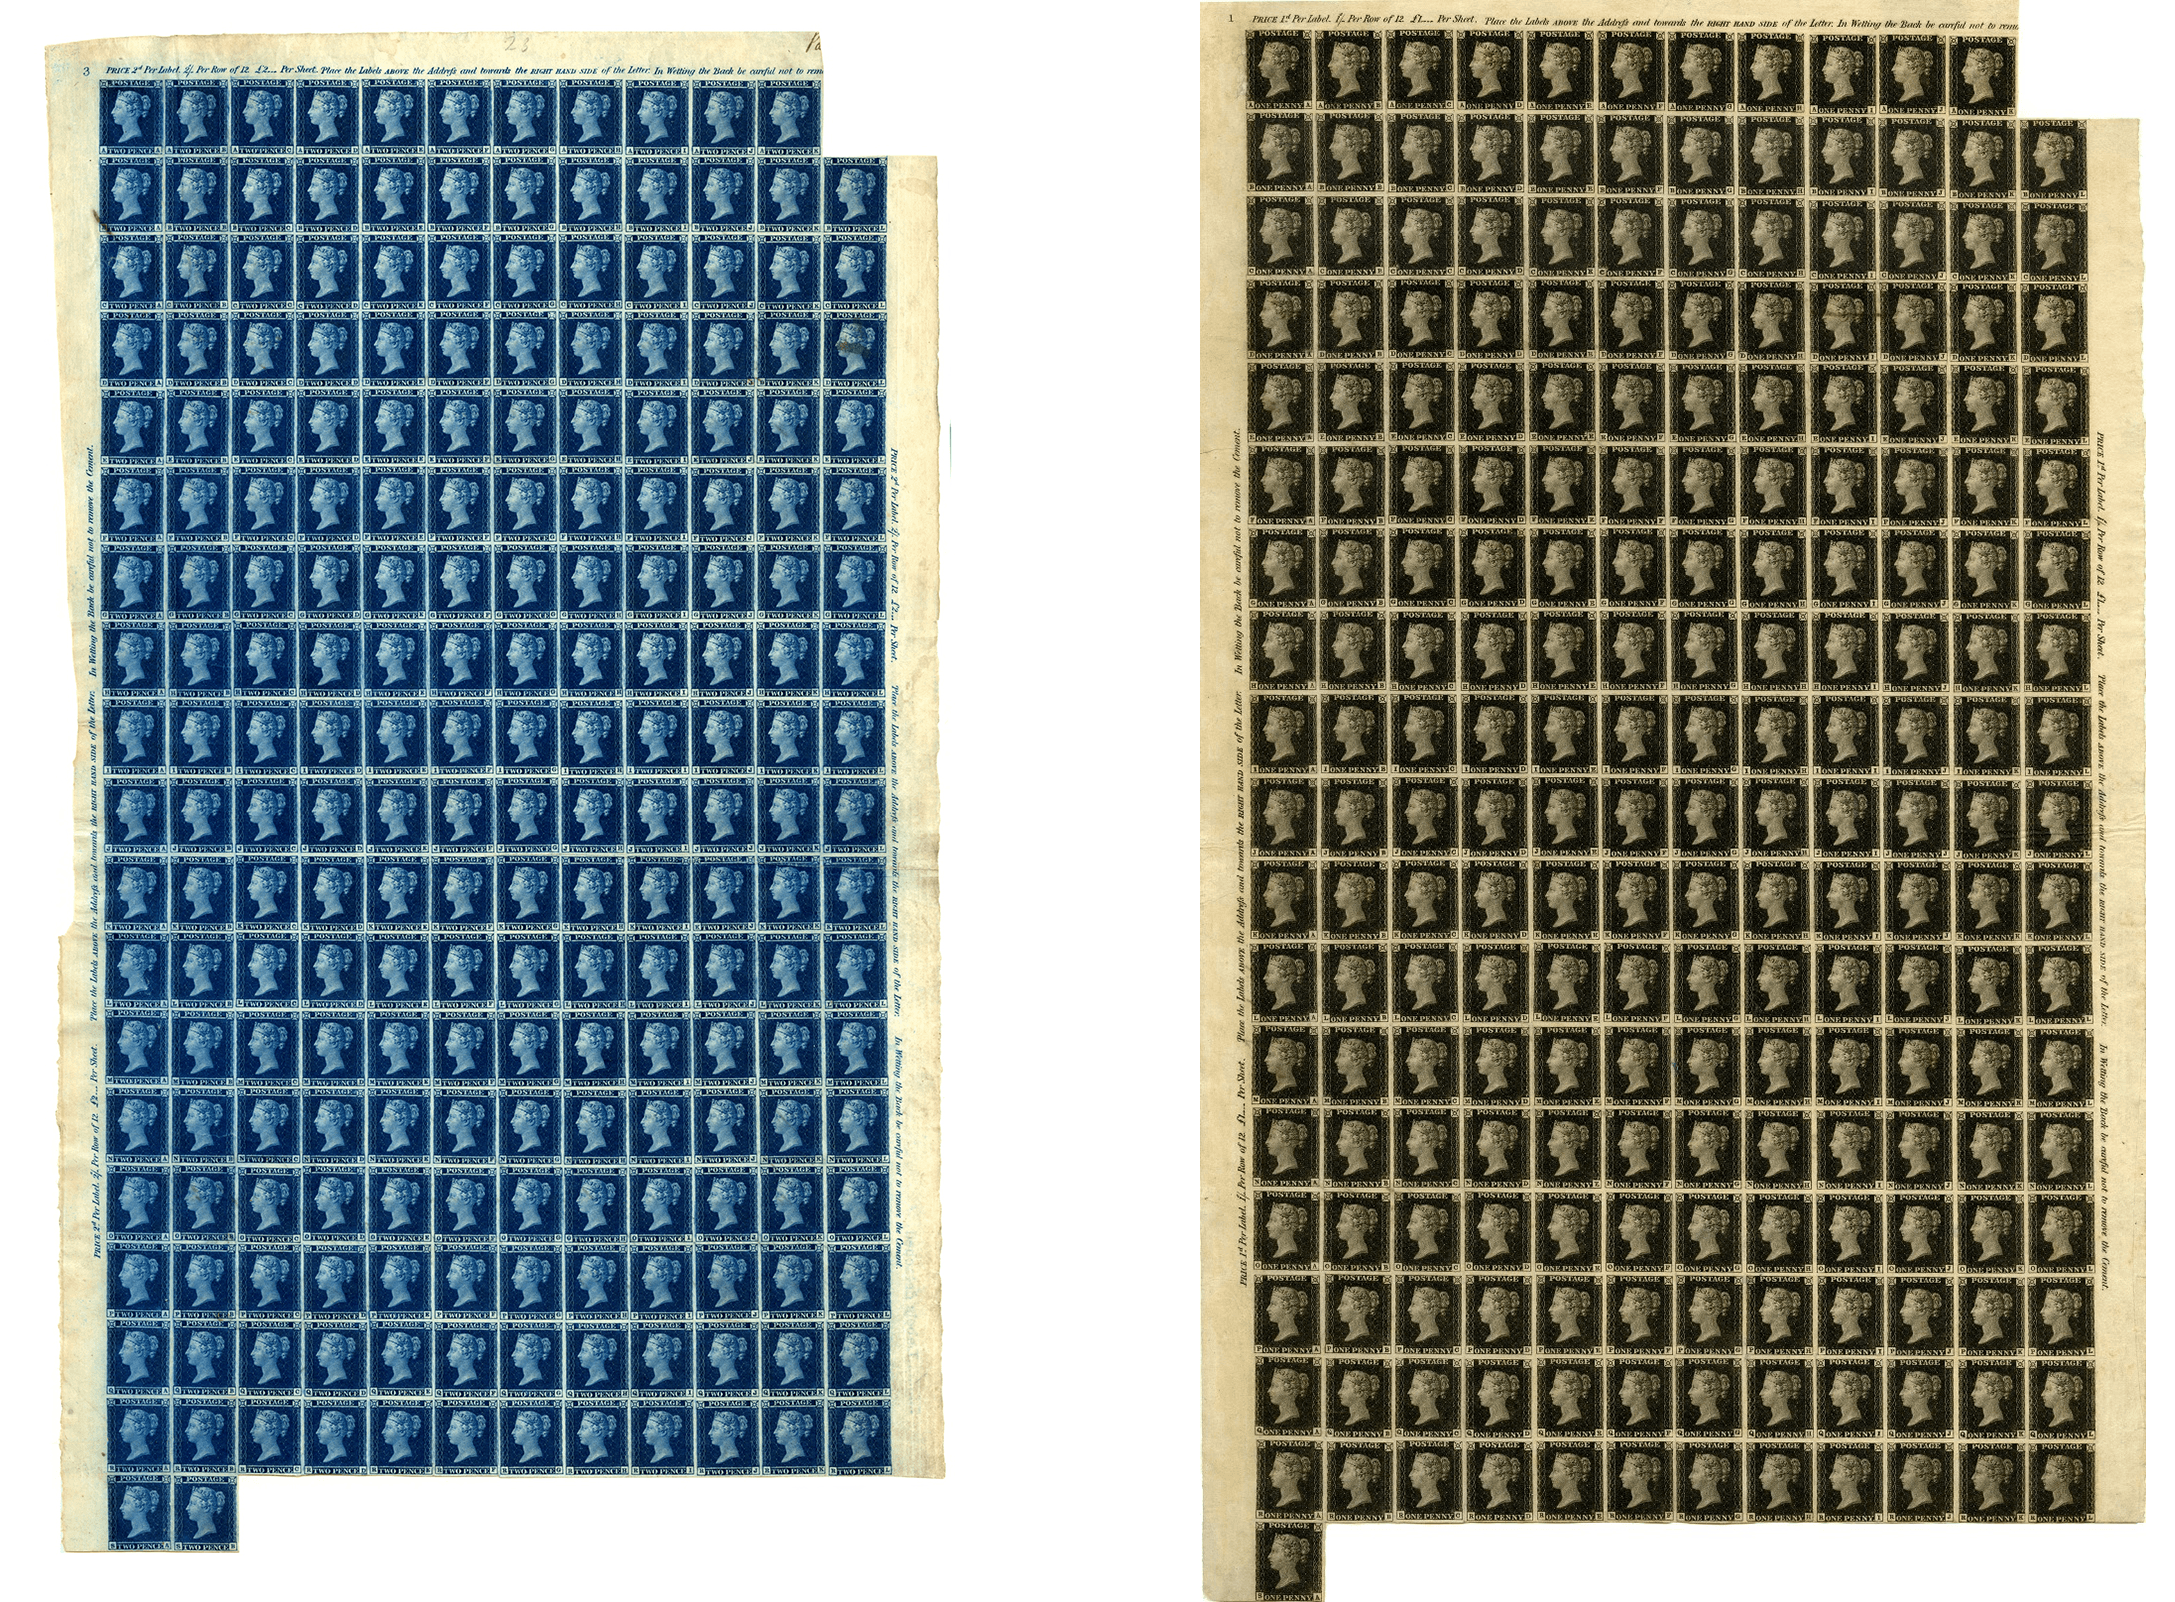 Original sheets of Twopenny Blue and Penny Black stamps